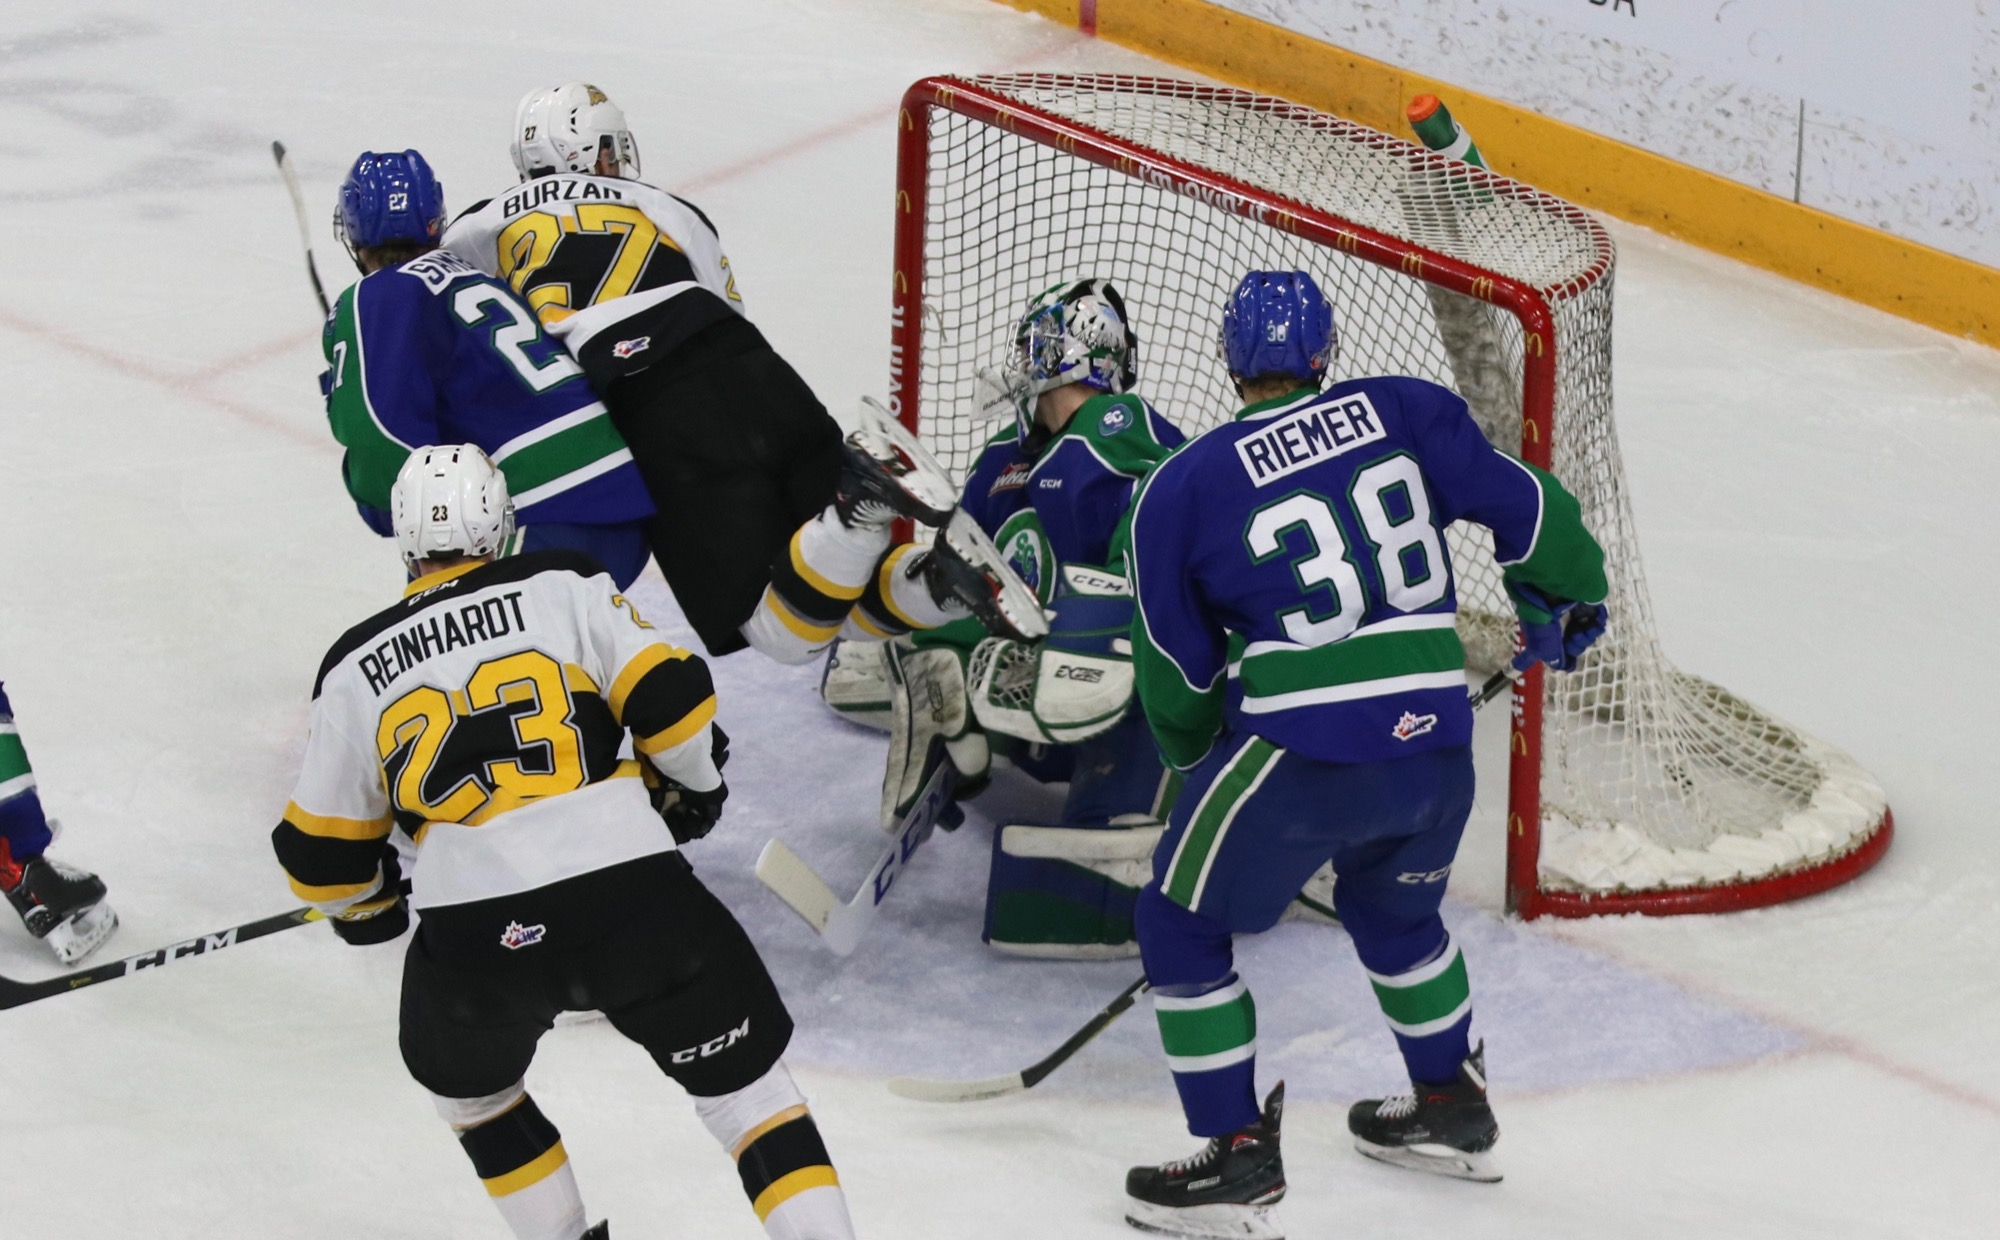 Brandon Wheat Kings forward Luka Burzan flies through the air as he scores the tying goal in the third period of a Western Hockey League game against the Swift Current Broncos on Monday at Westoba Place. Broncos goalie Isaac Poulter of Winnipeg is flanked by defenceman Garrett Sambrook of Medora (27) and Christian Riemer (38), along with Wheat Kings forward Cole Reinhardt, who scored the game winner in overtime.